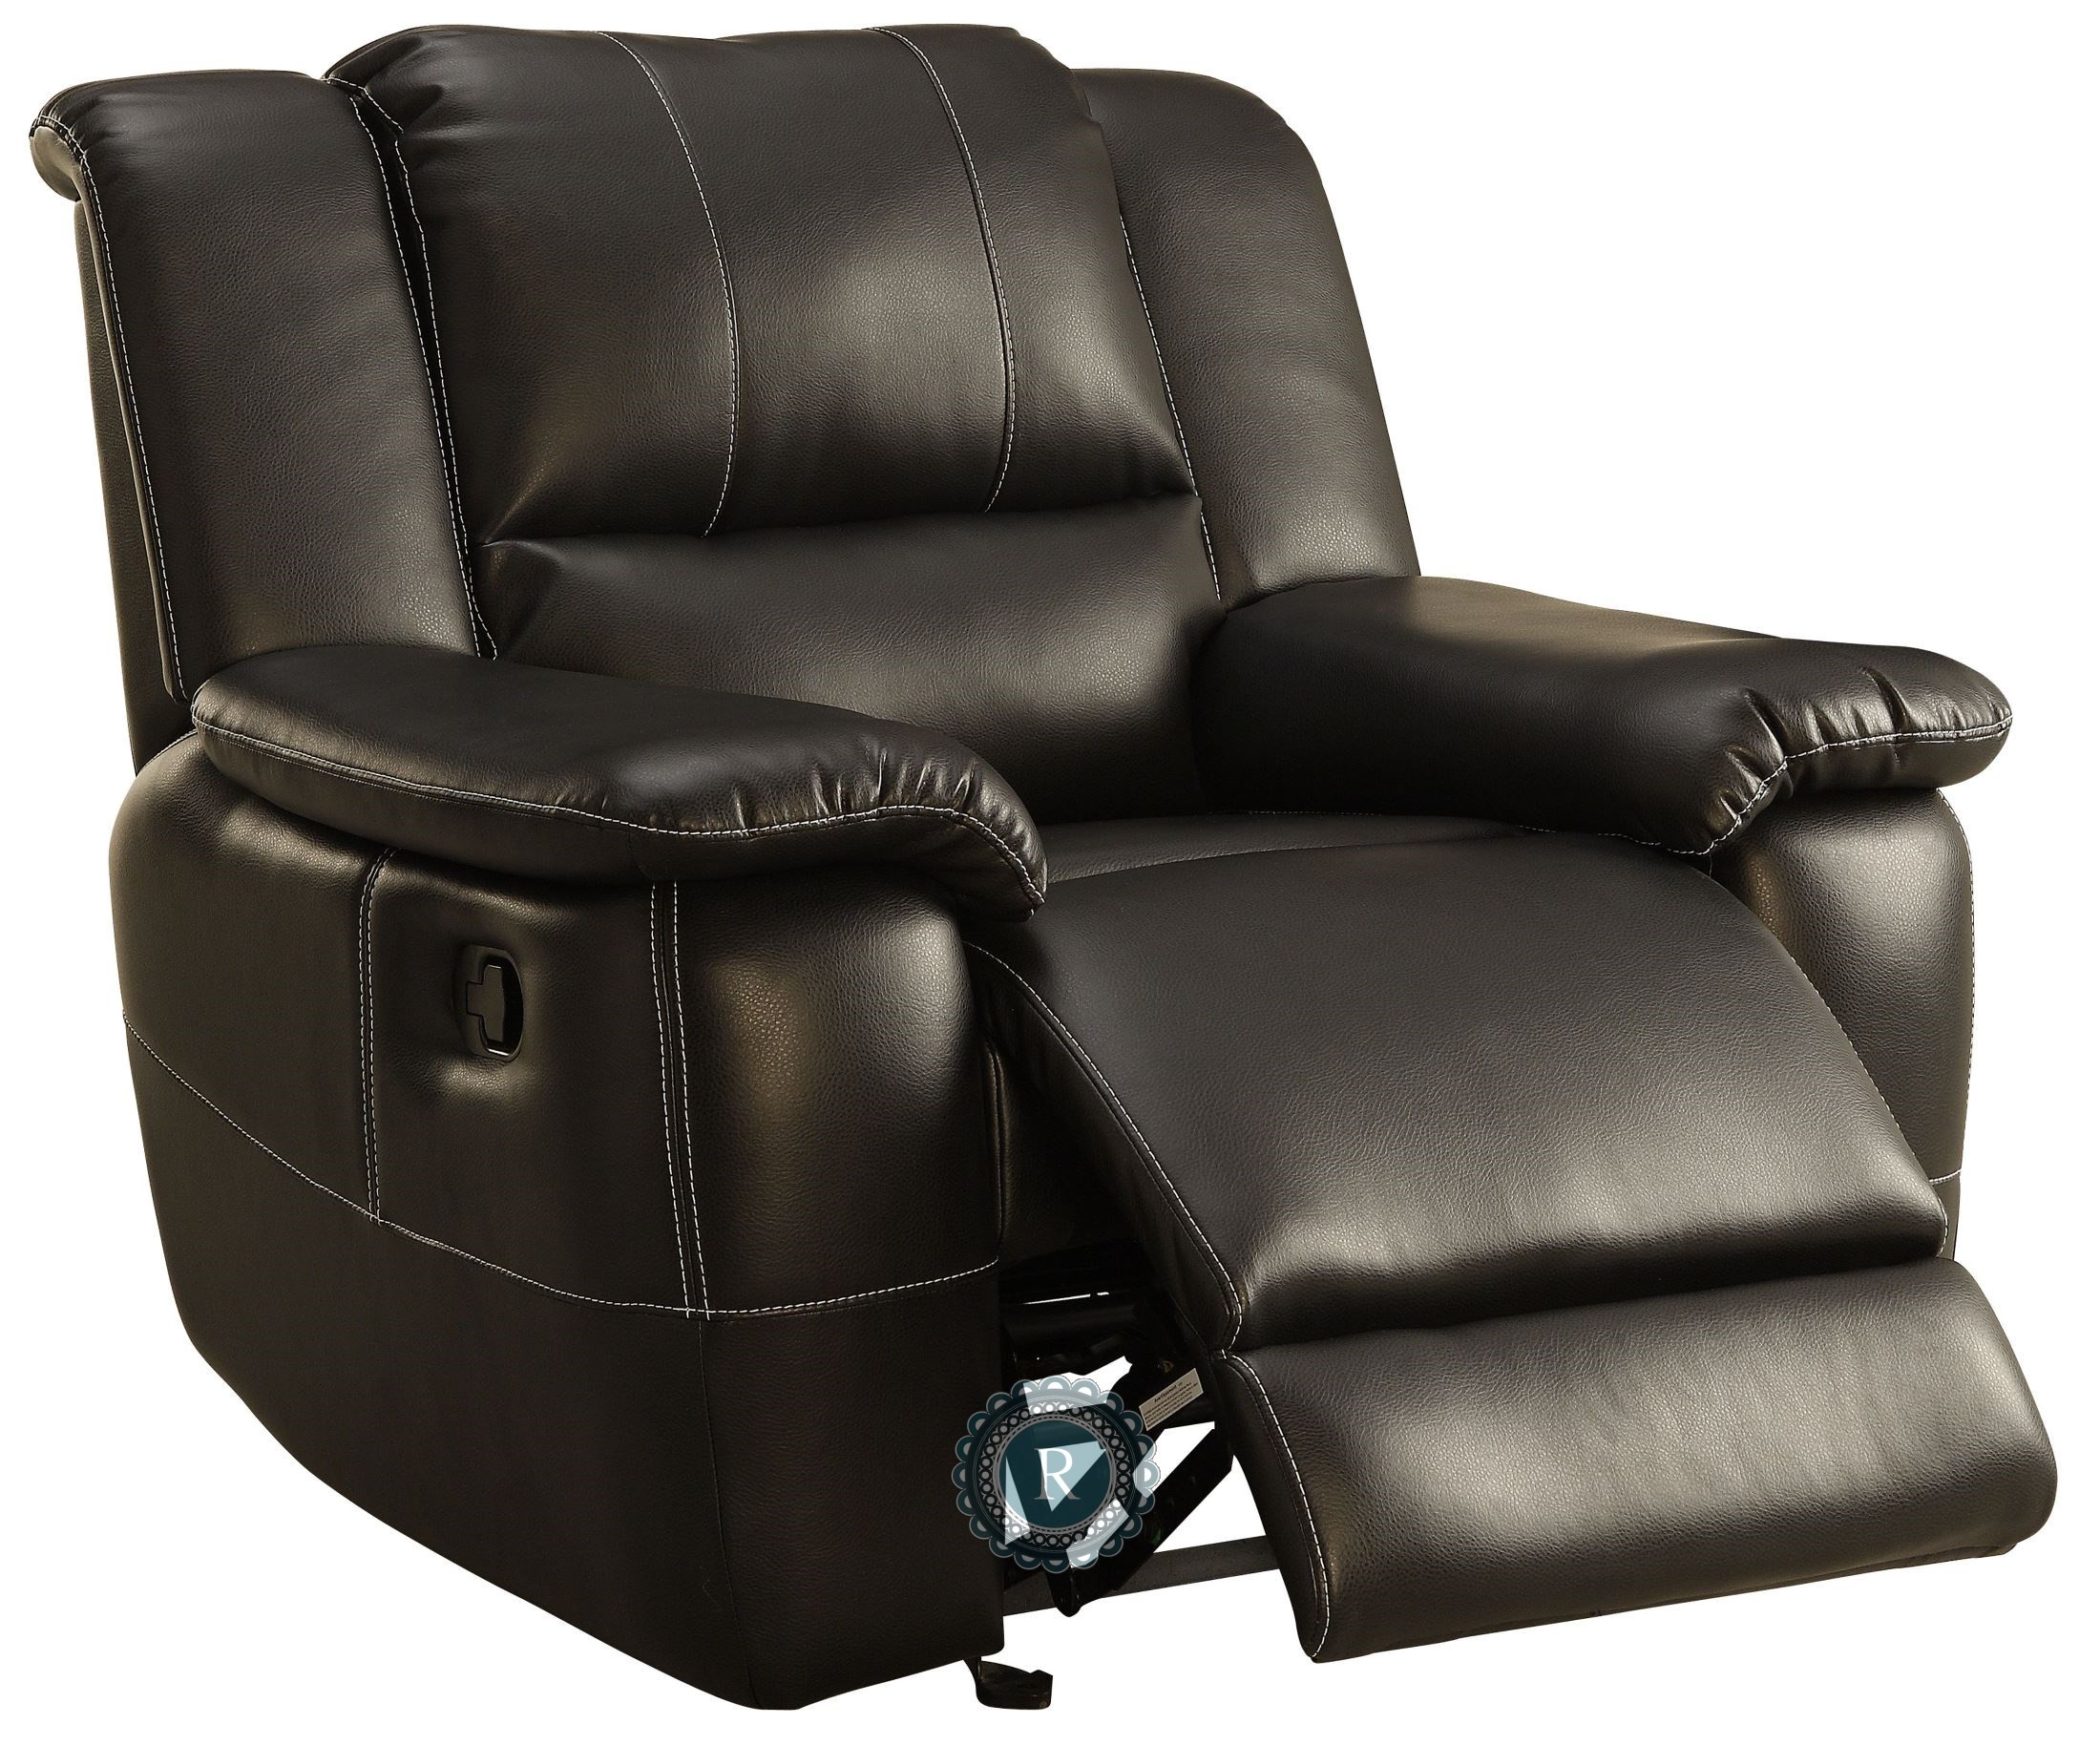 Cantrell Glider Reclining Chair from Homelegance 9778BLK